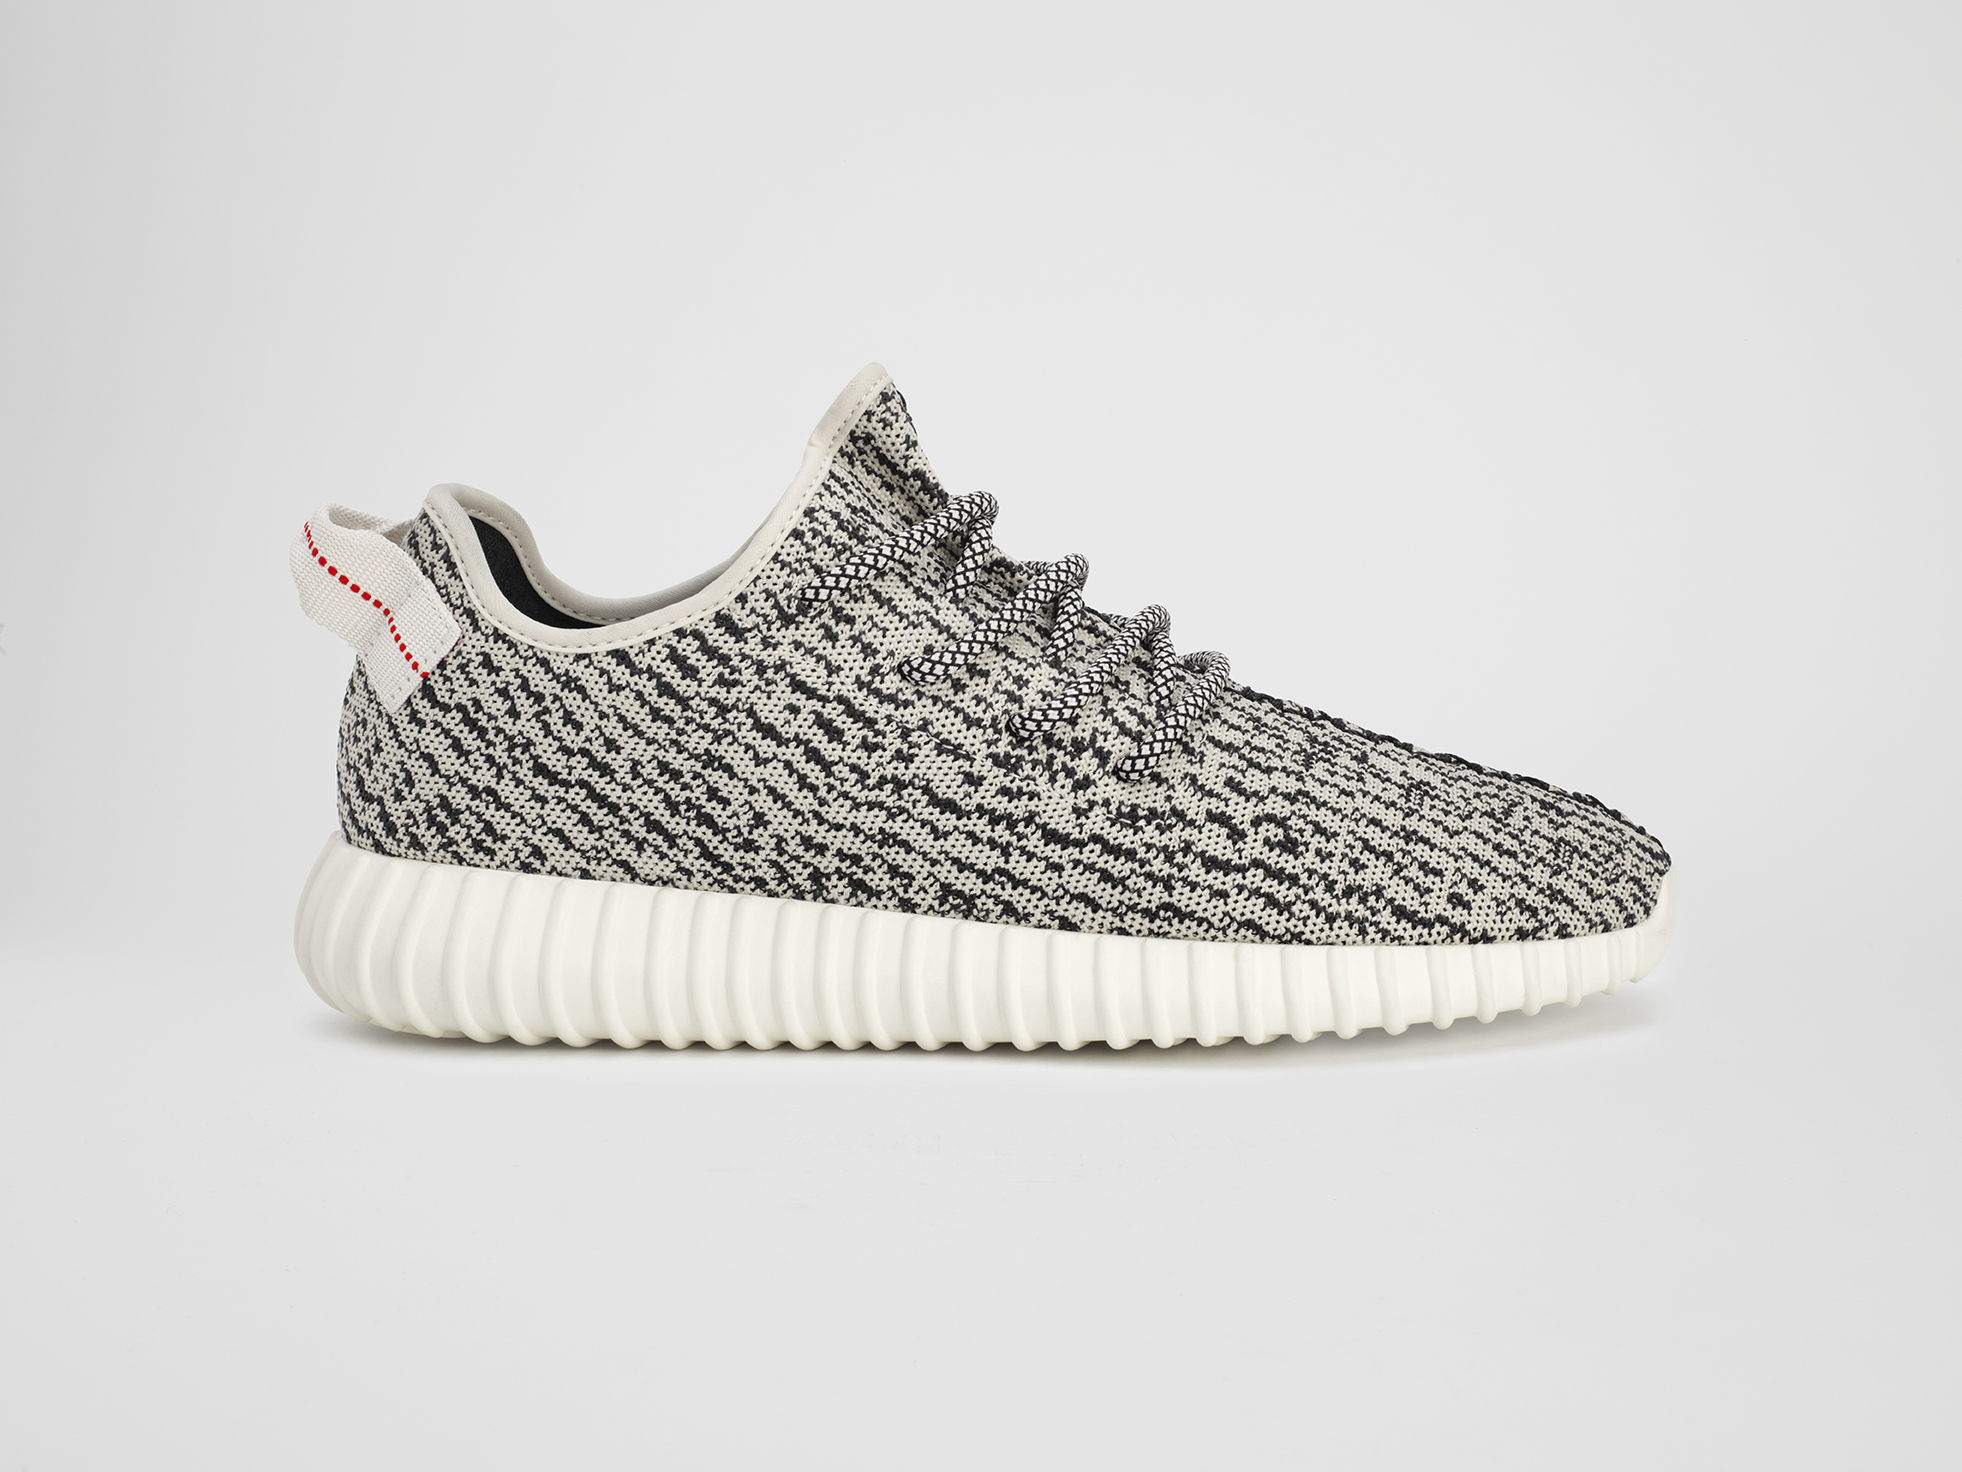 adidas x Kanye: Introducing the YEEZY BOOST 350